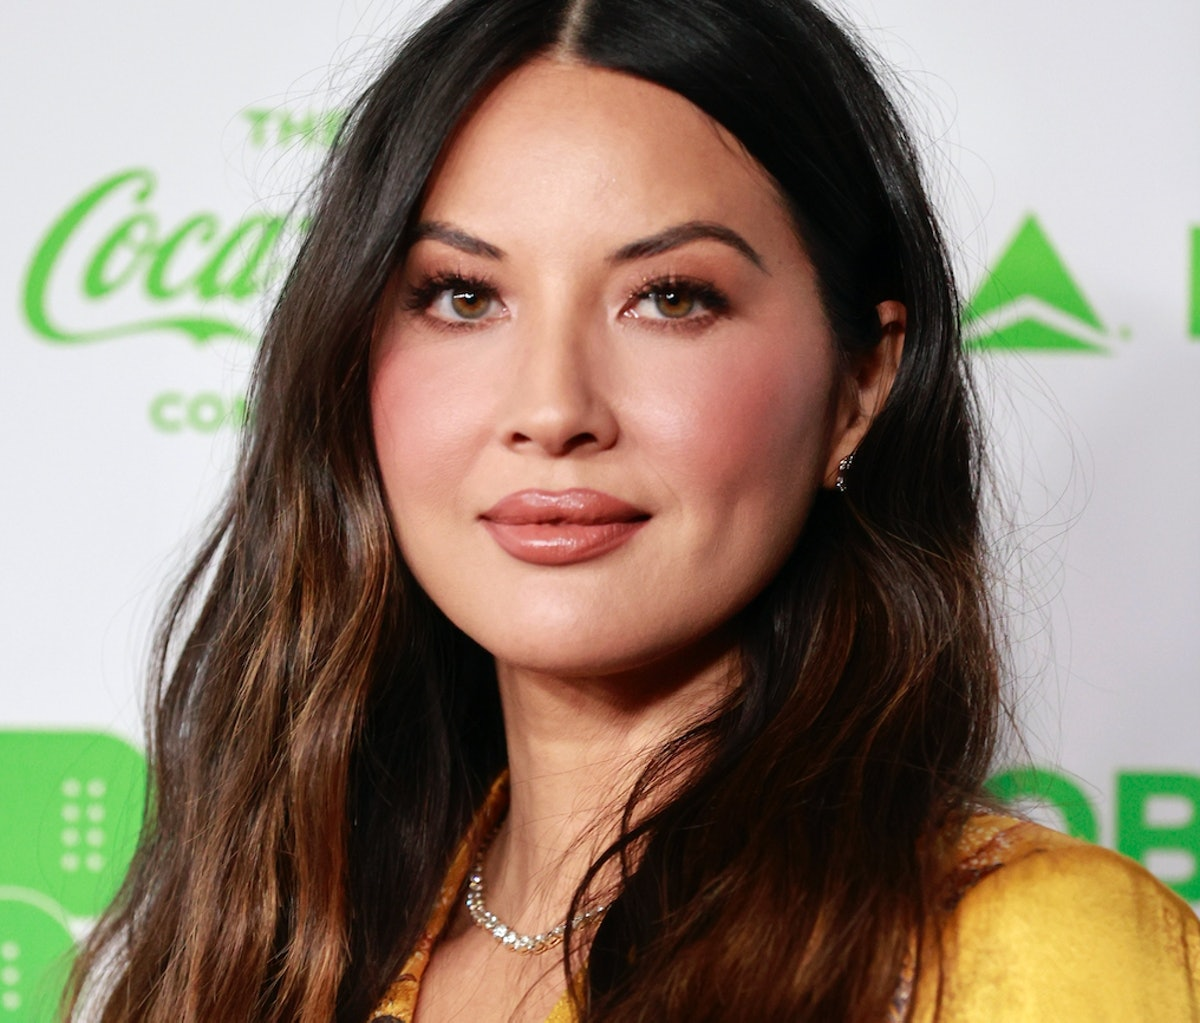 Olivia Munn's reported relationship with John Mulaney began in summer 2021.